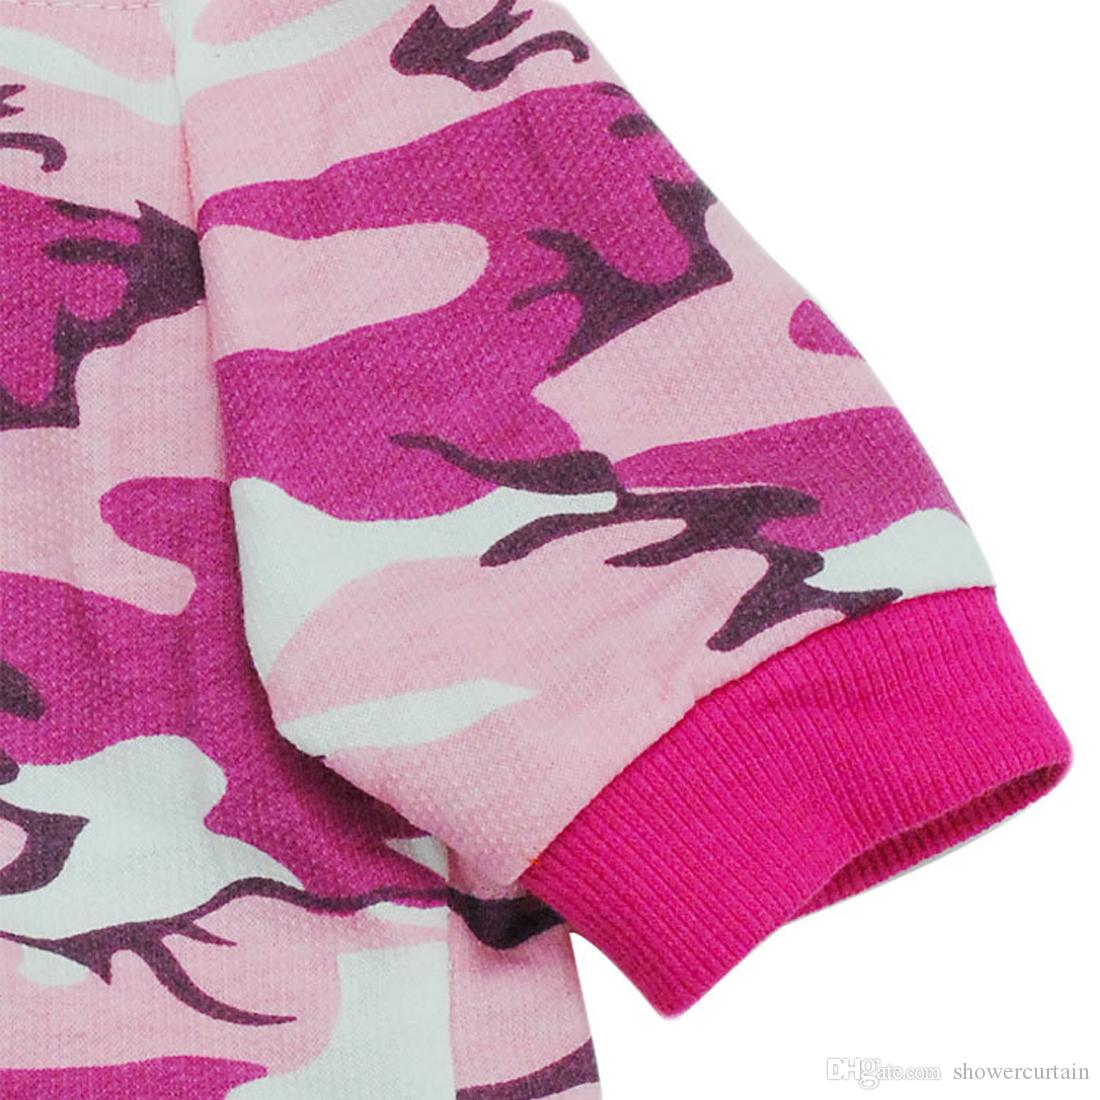 New Arrival Fashion camouflage Pet Sweater Puppy T Shirt Dog Cat Warm Hoodies Coat Clothes Apparelfor Sale Fast